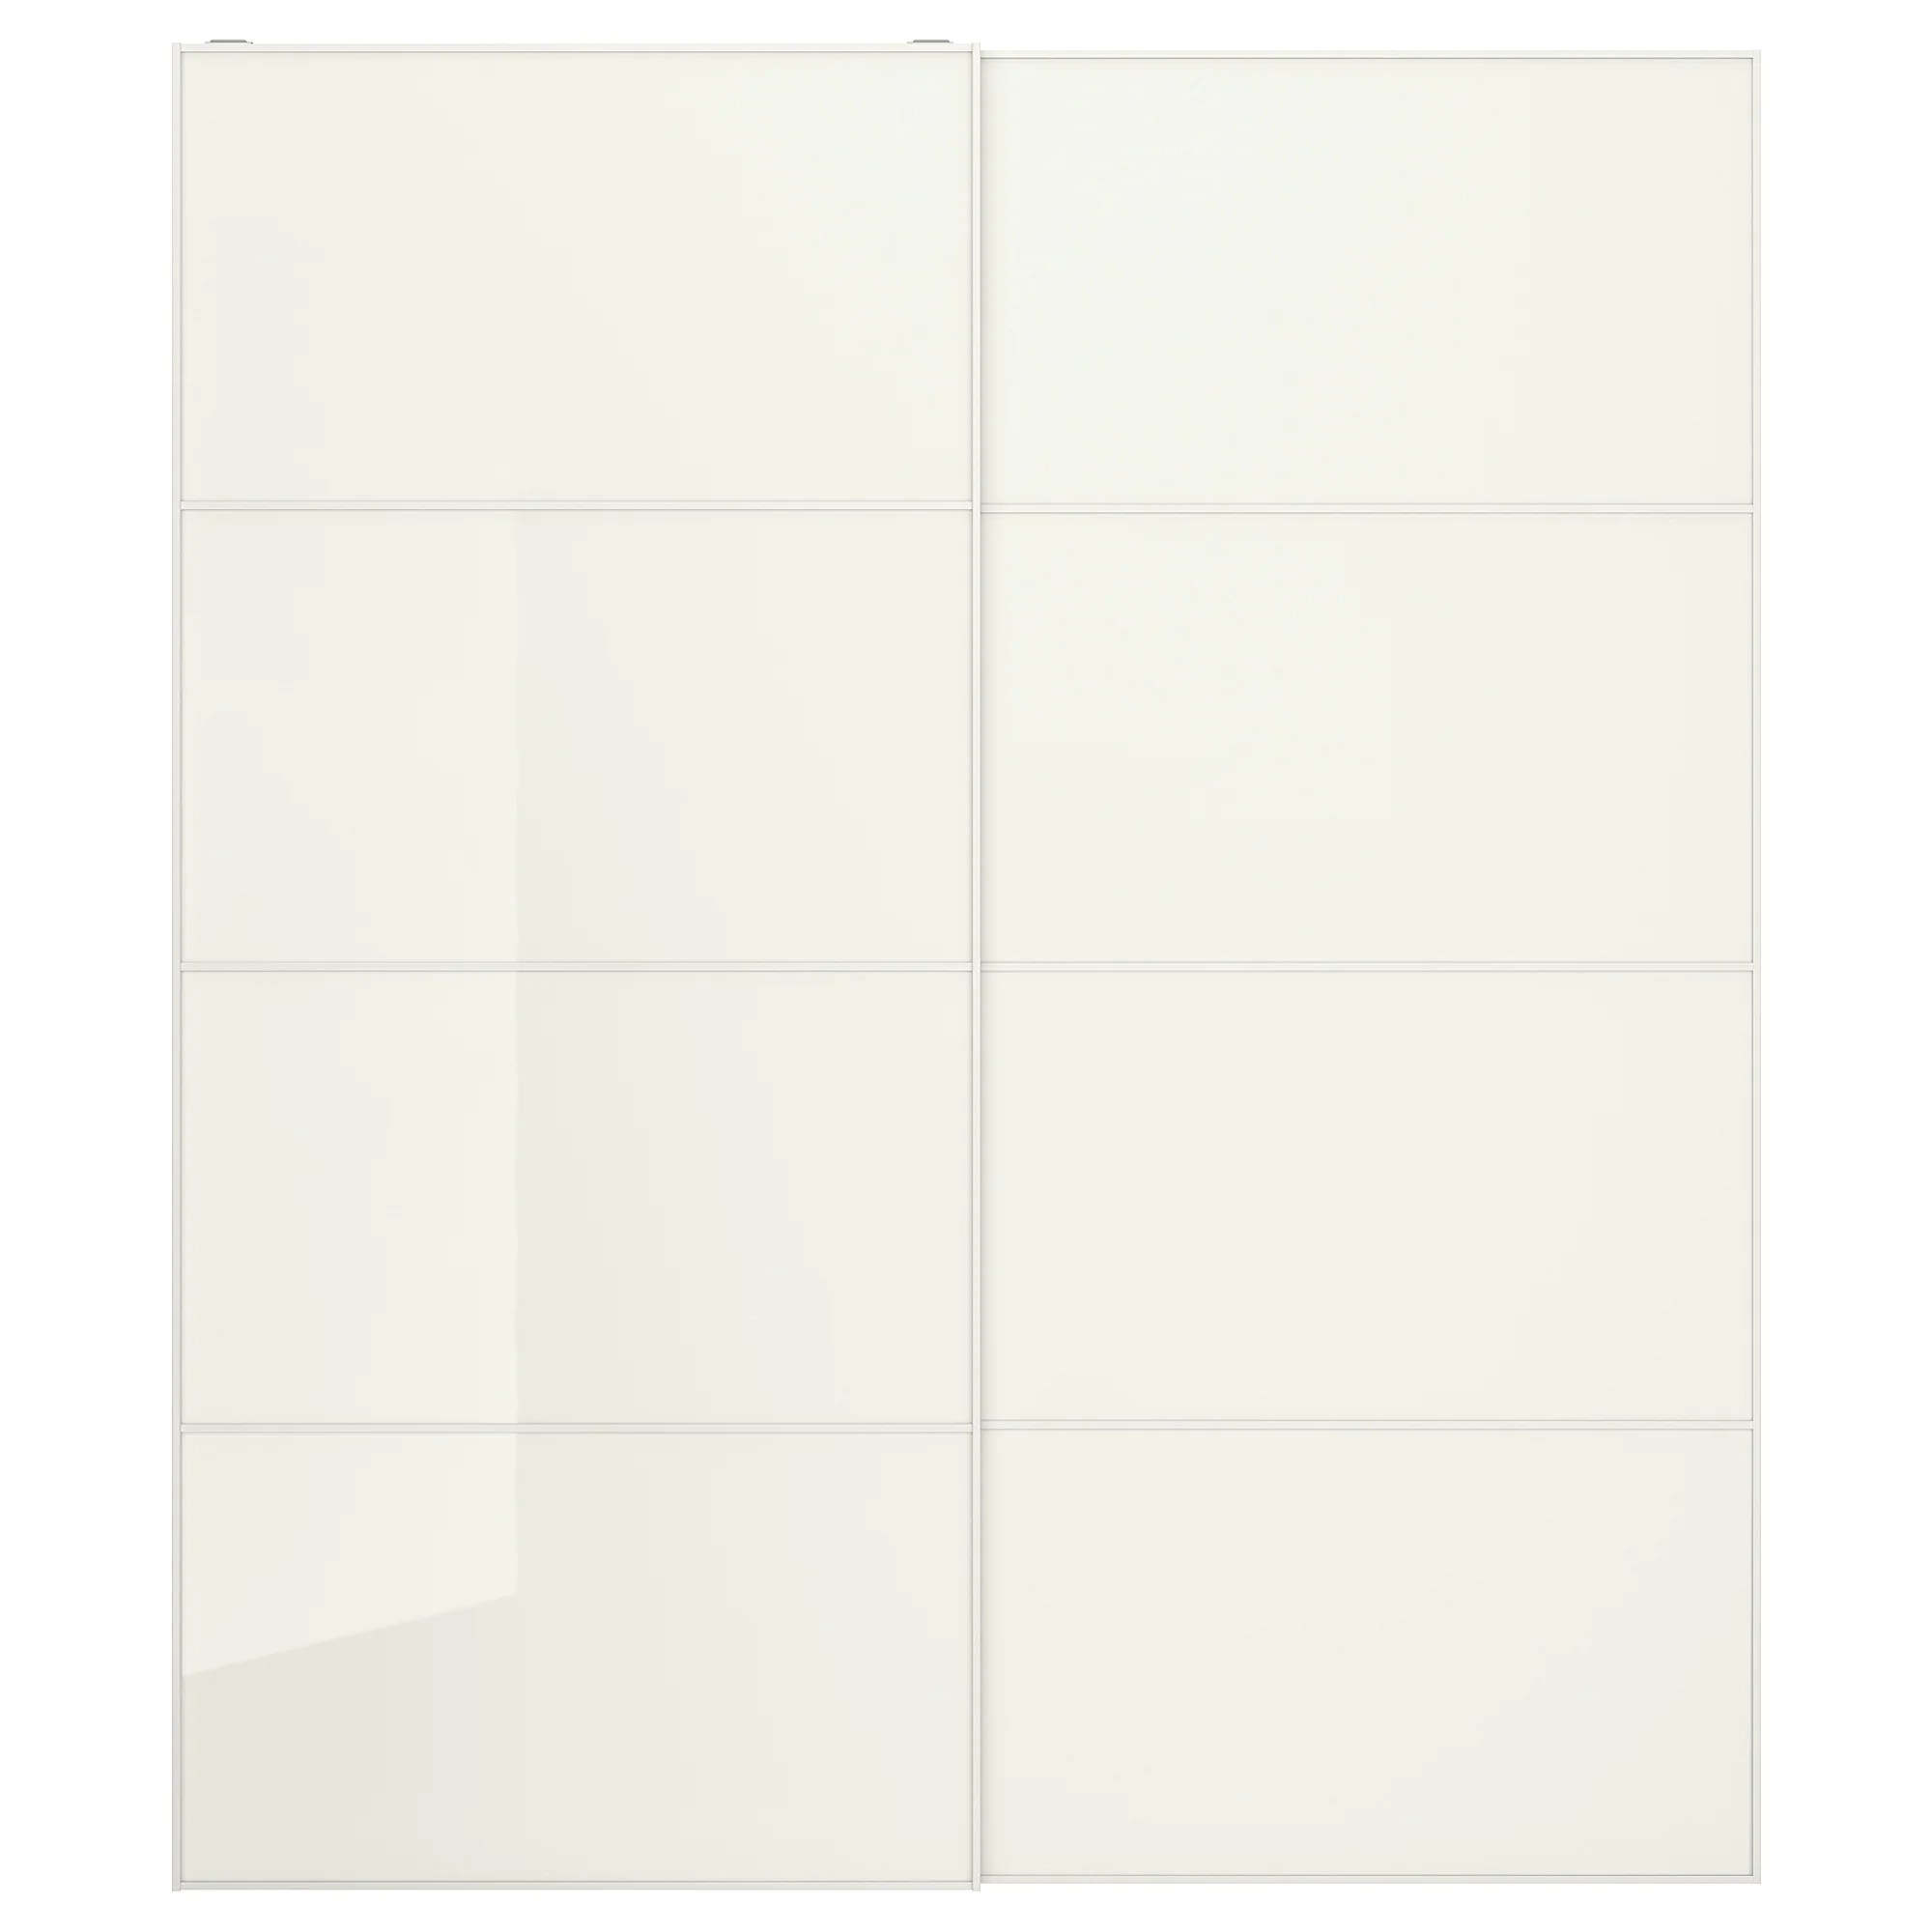 Farvik Pair Of Sliding Doors White Glass Ikea